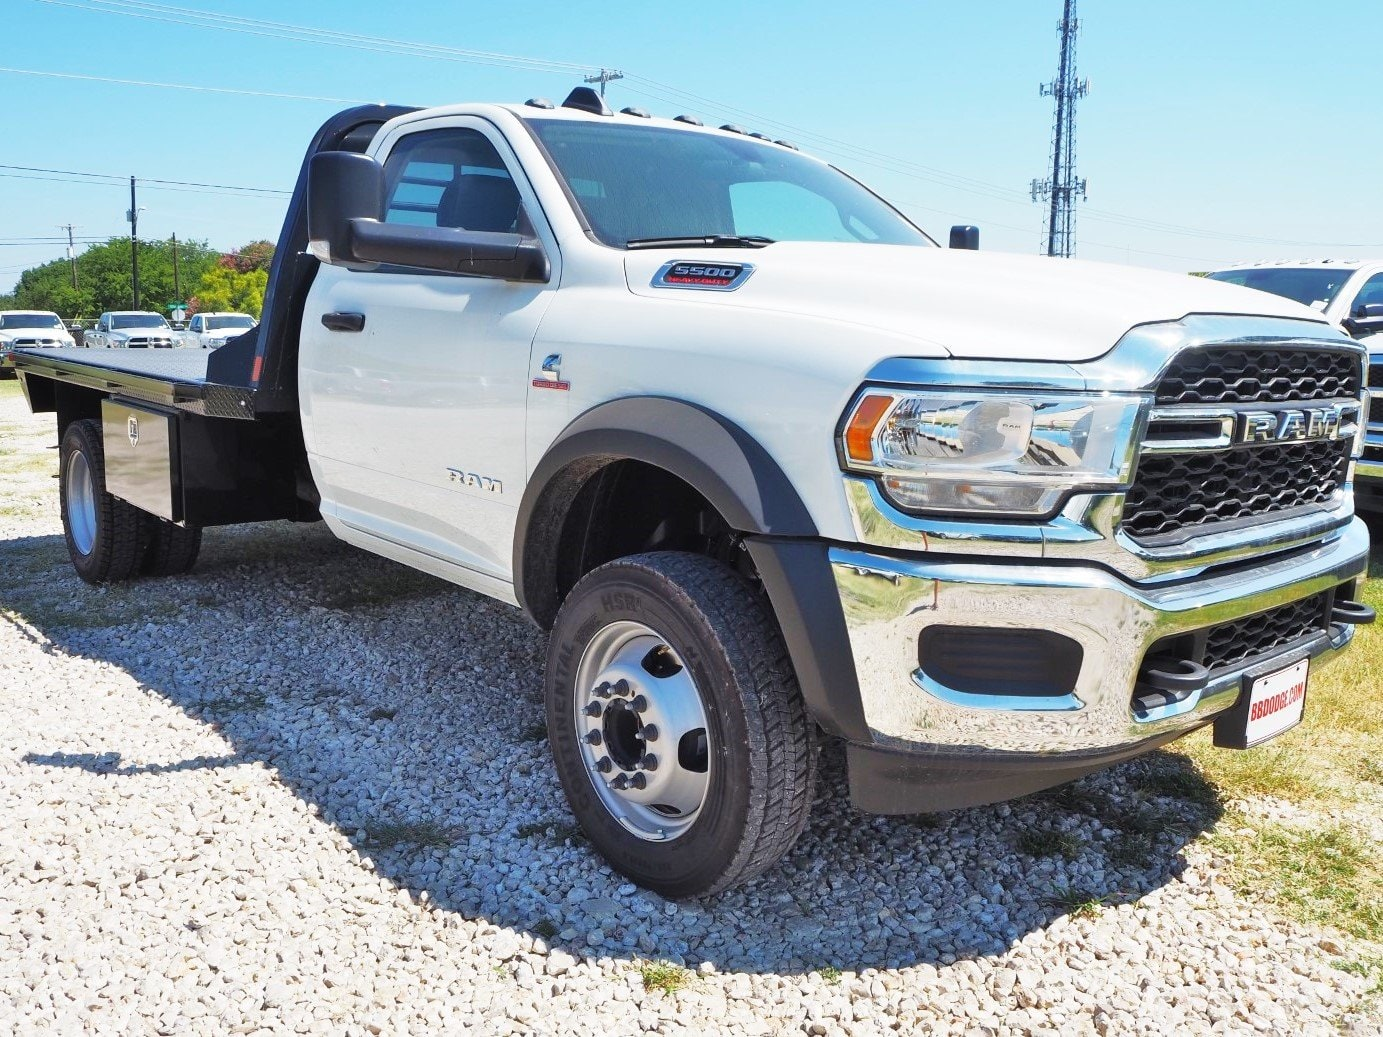 Dodge Ram Truck Bed For Sale >> 2019 Ram 5500 Regular Cab Drw 4x4 Cm Truck Beds Dealers Truck Flatbed Stock Tg531425